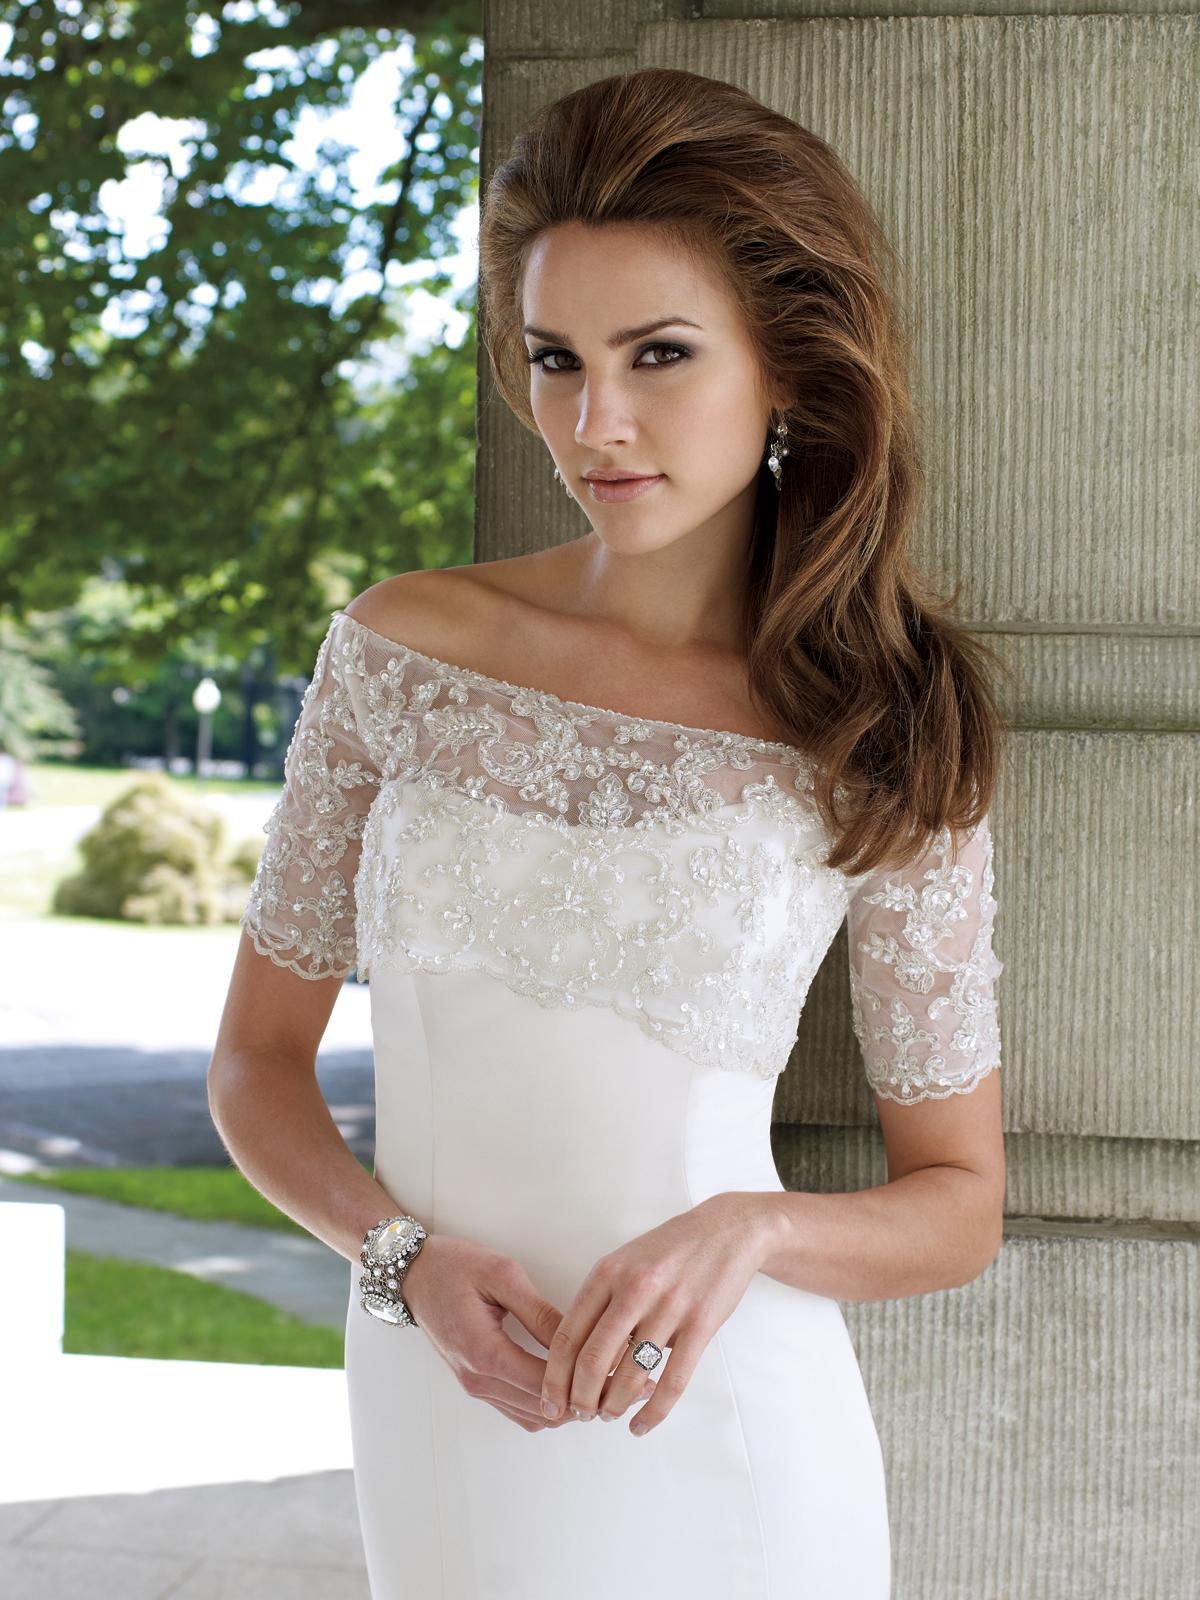 Petite Wedding Dress: Tips for Our Lovely Petite Girls! - EverAfterGuide